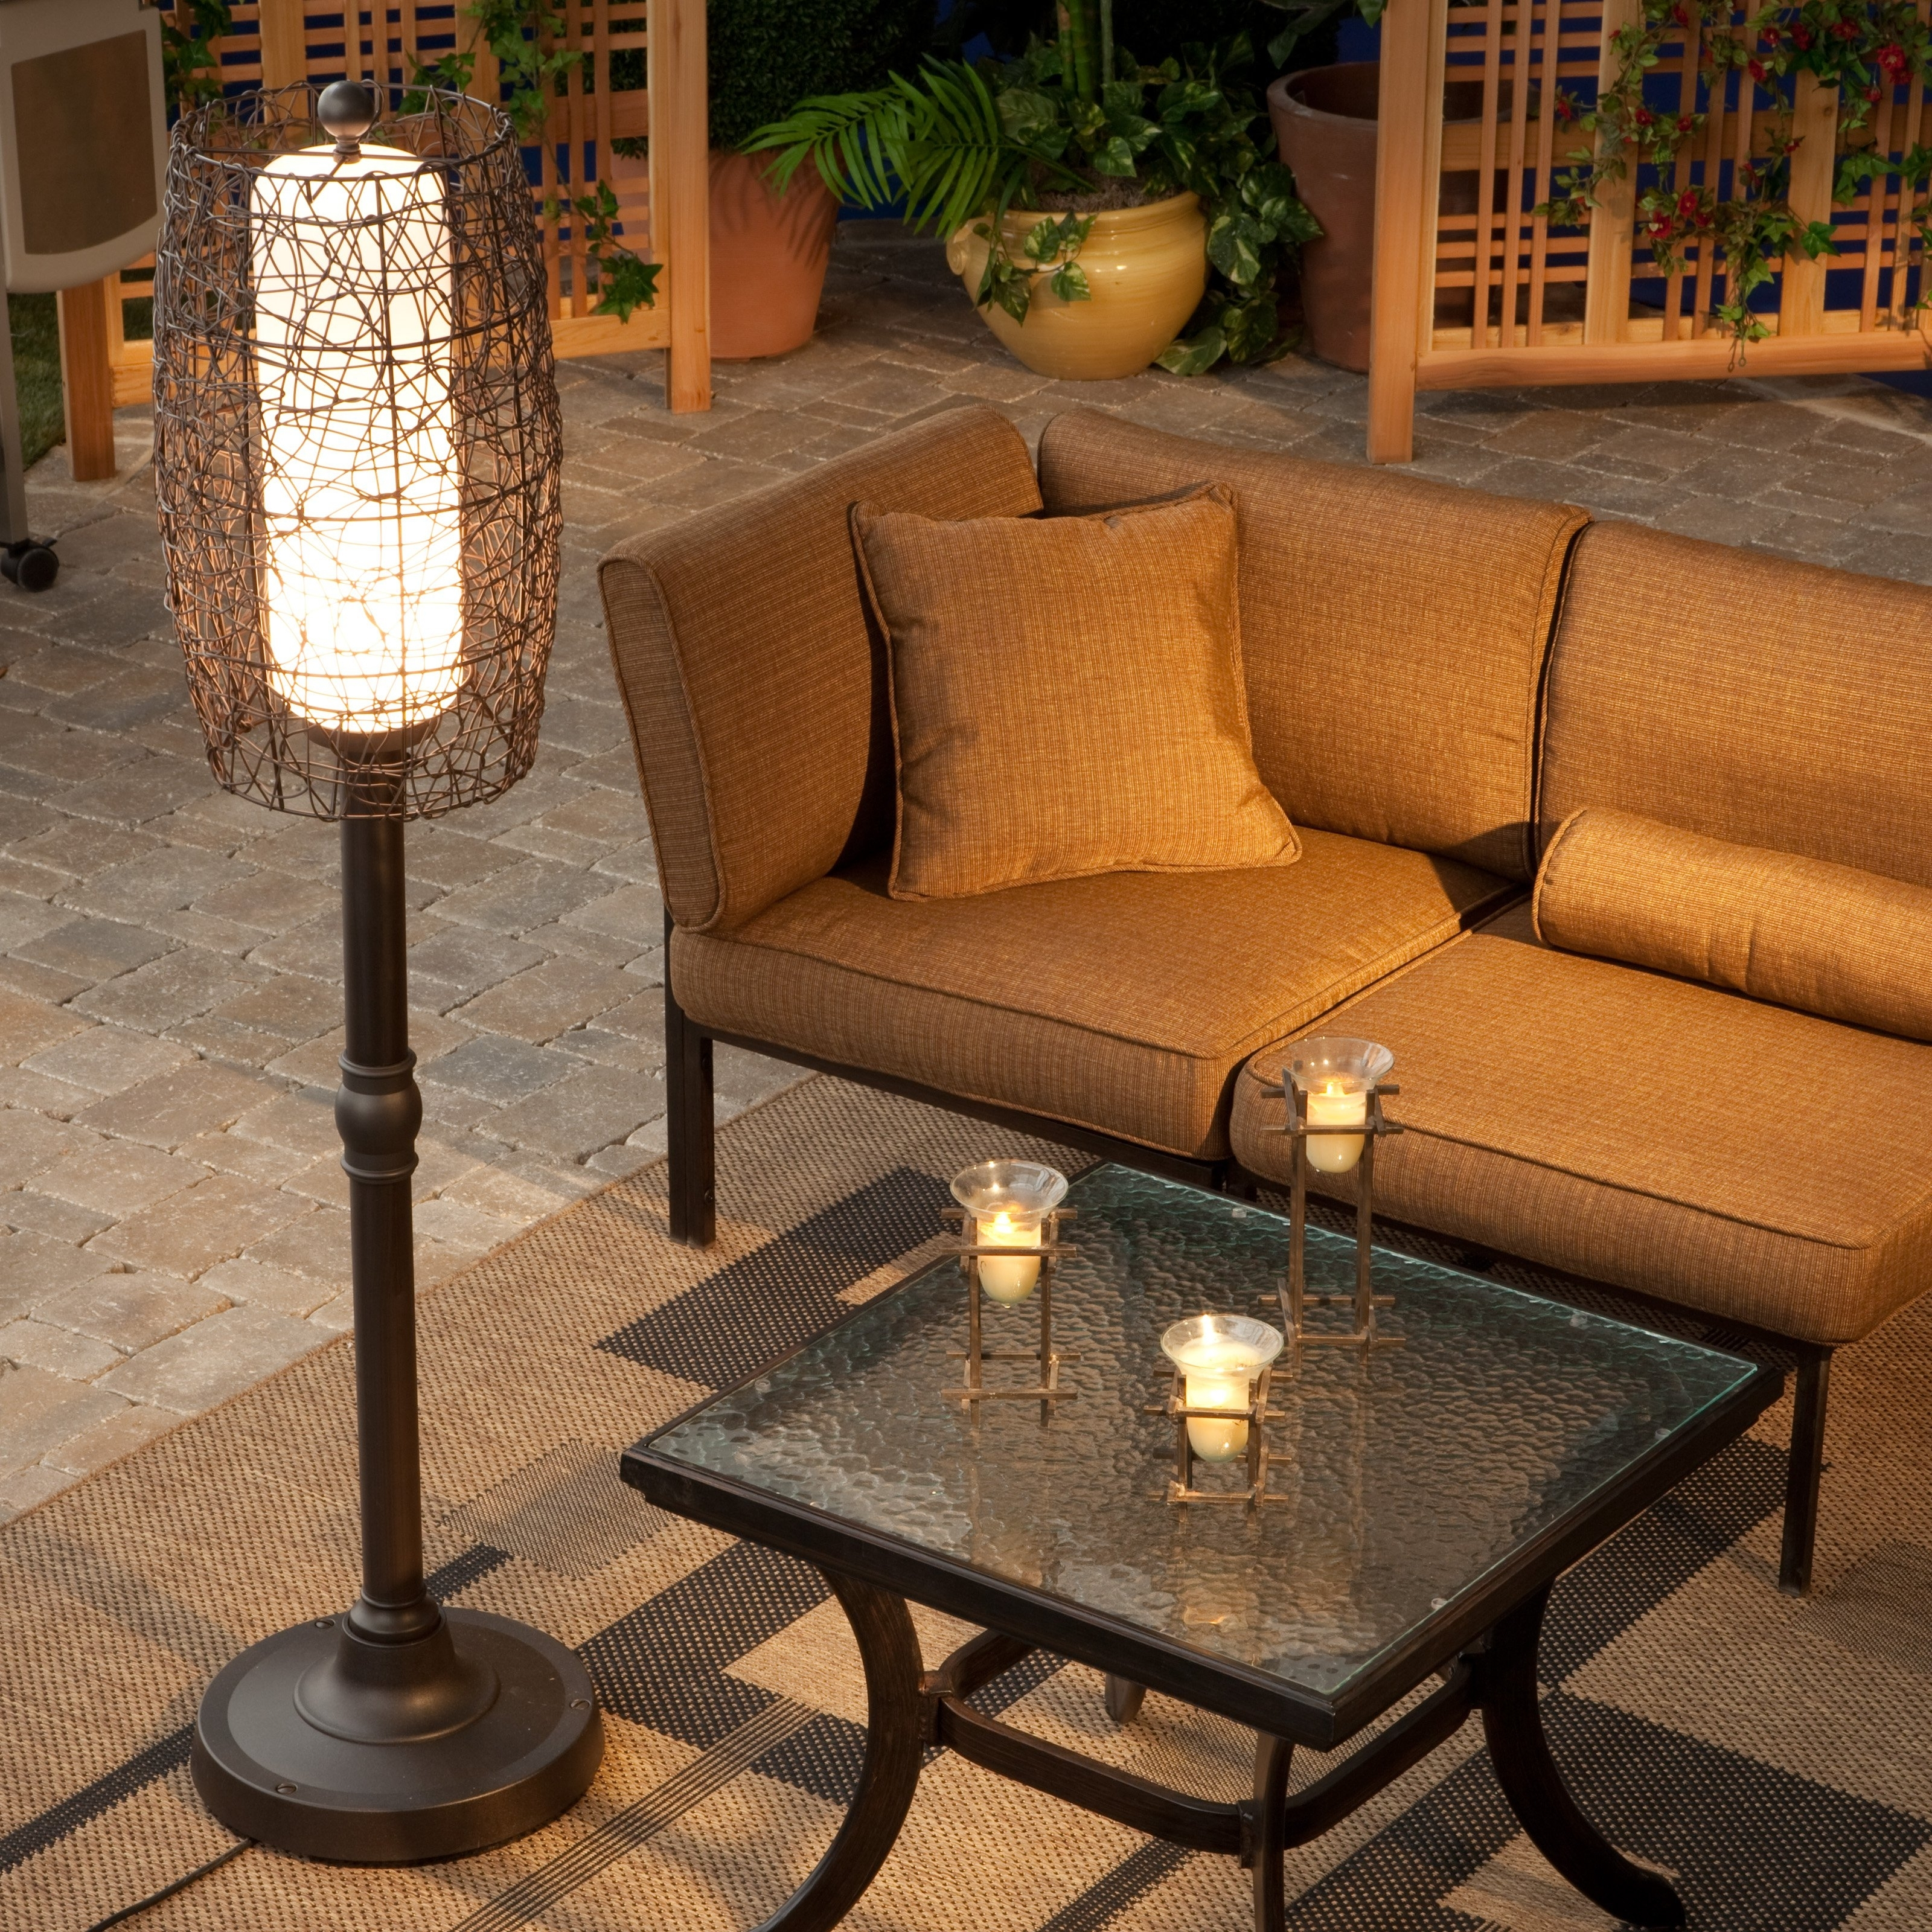 Most Popular Outdoor Lawn Lanterns Intended For Patio Lamps Outdoor Lighting – Outdoor Lighting Ideas (View 7 of 20)